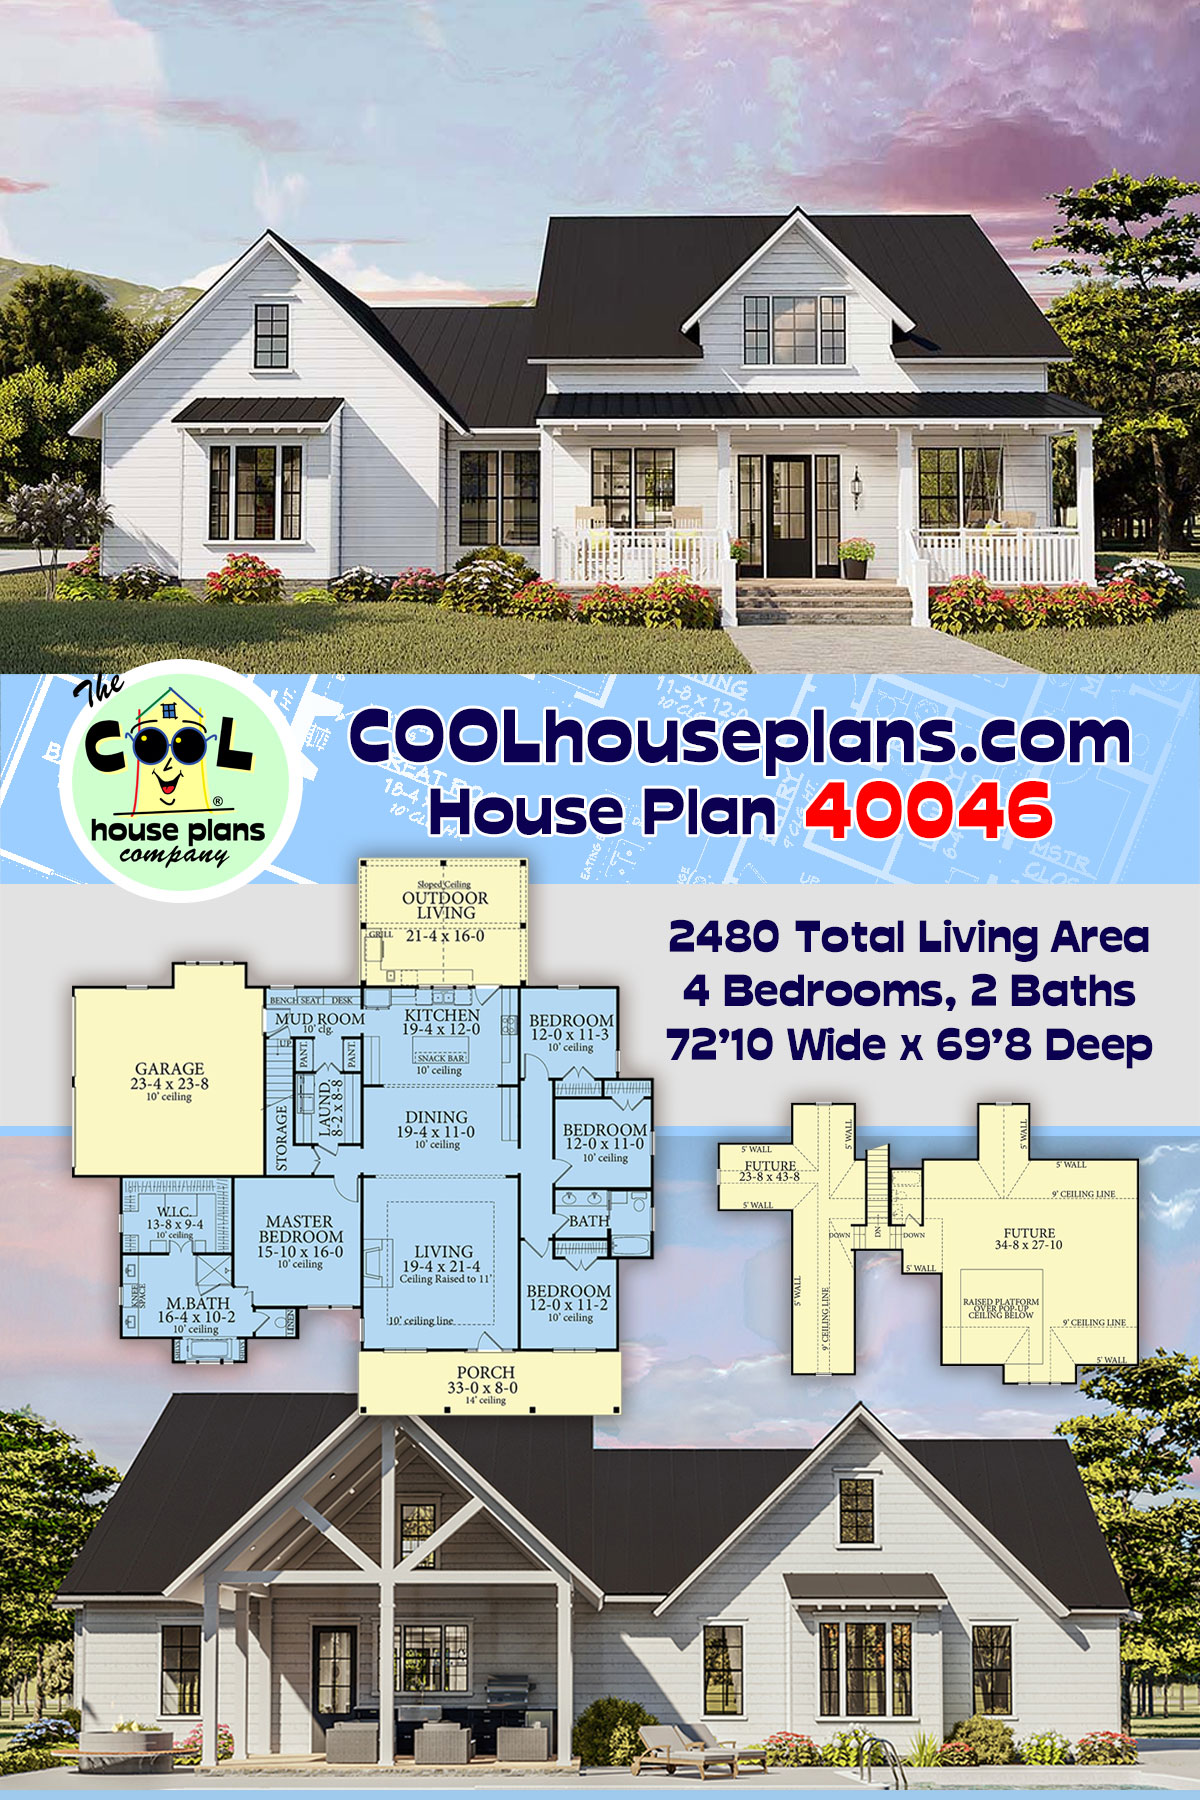 Cottage, Country, Craftsman, Farmhouse, Ranch, Southern, Traditional House Plan 40046 with 4 Beds, 2 Baths, 2 Car Garage